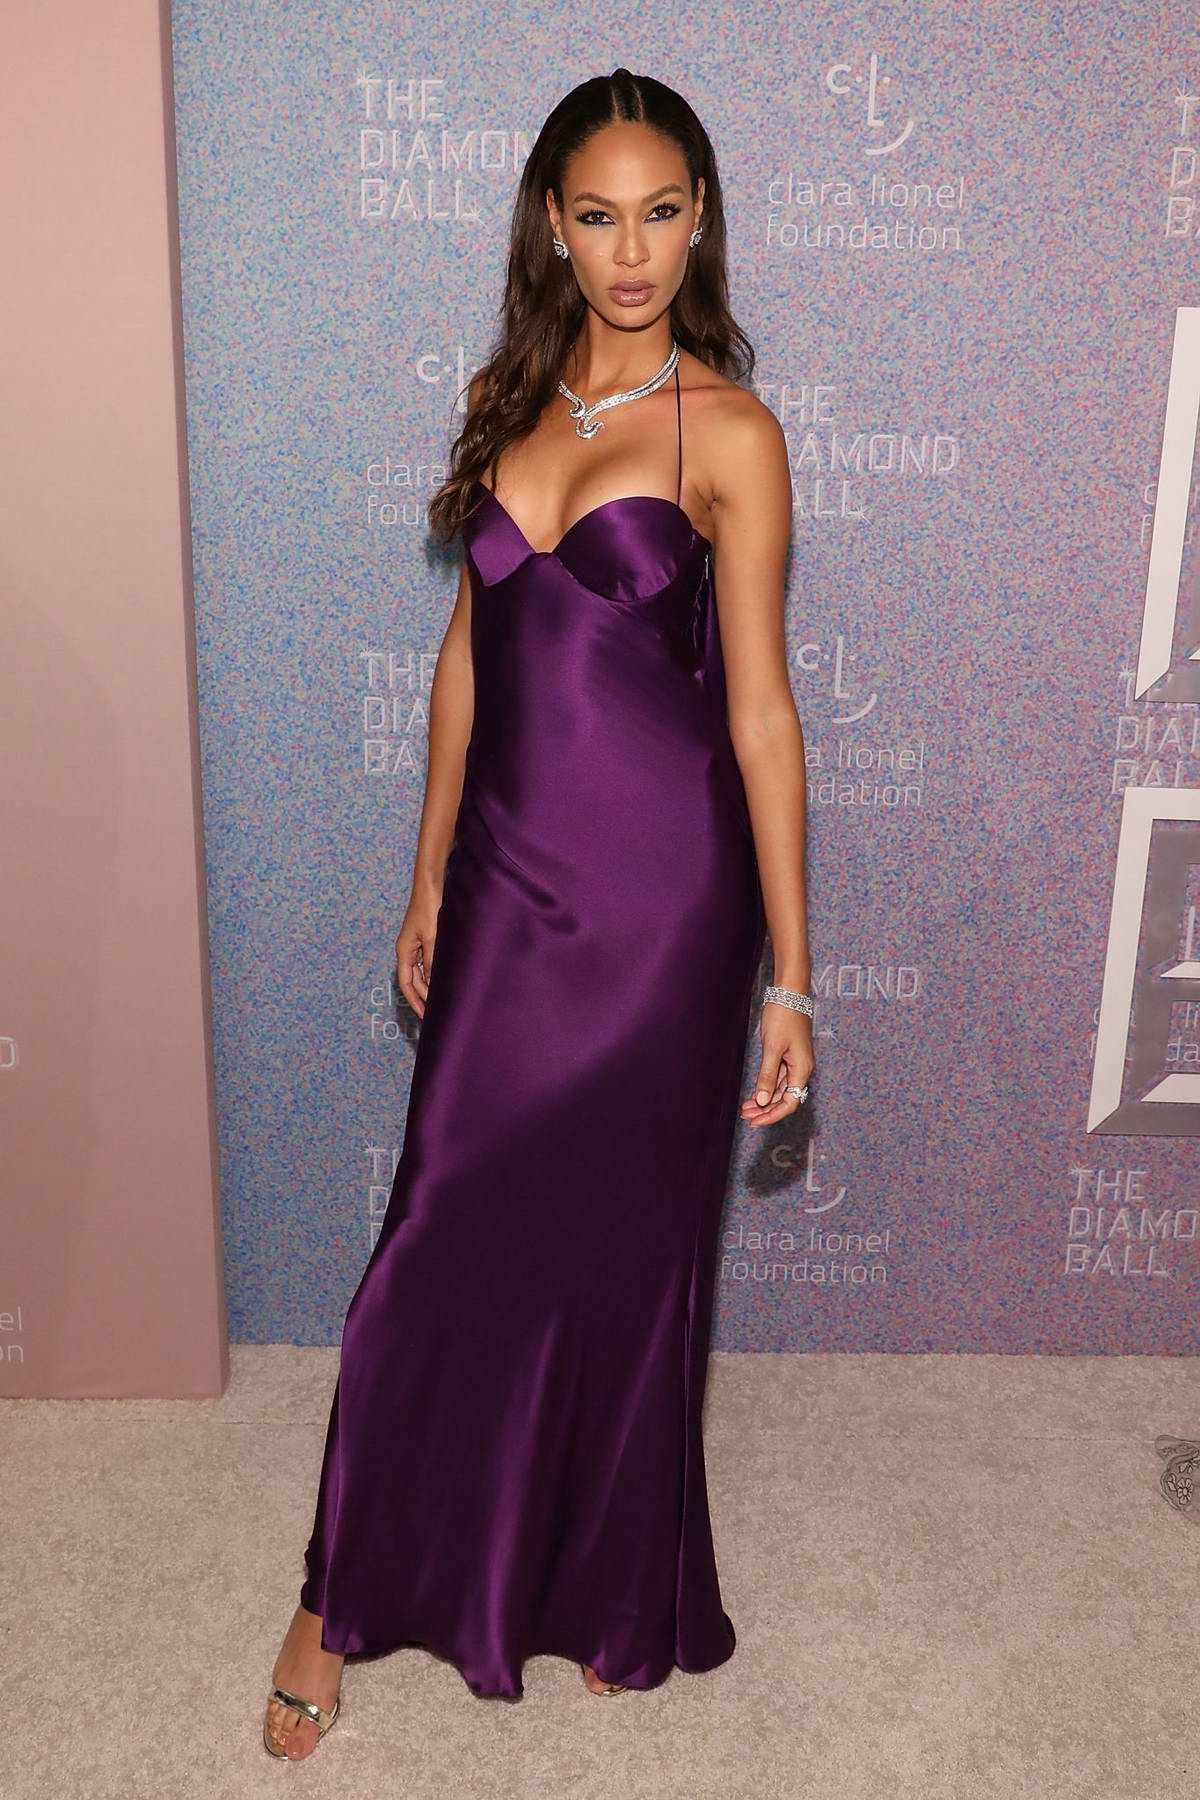 Joan Smalls attends 4th Annual Clara Lionel Foundation Diamond Ball in New York City